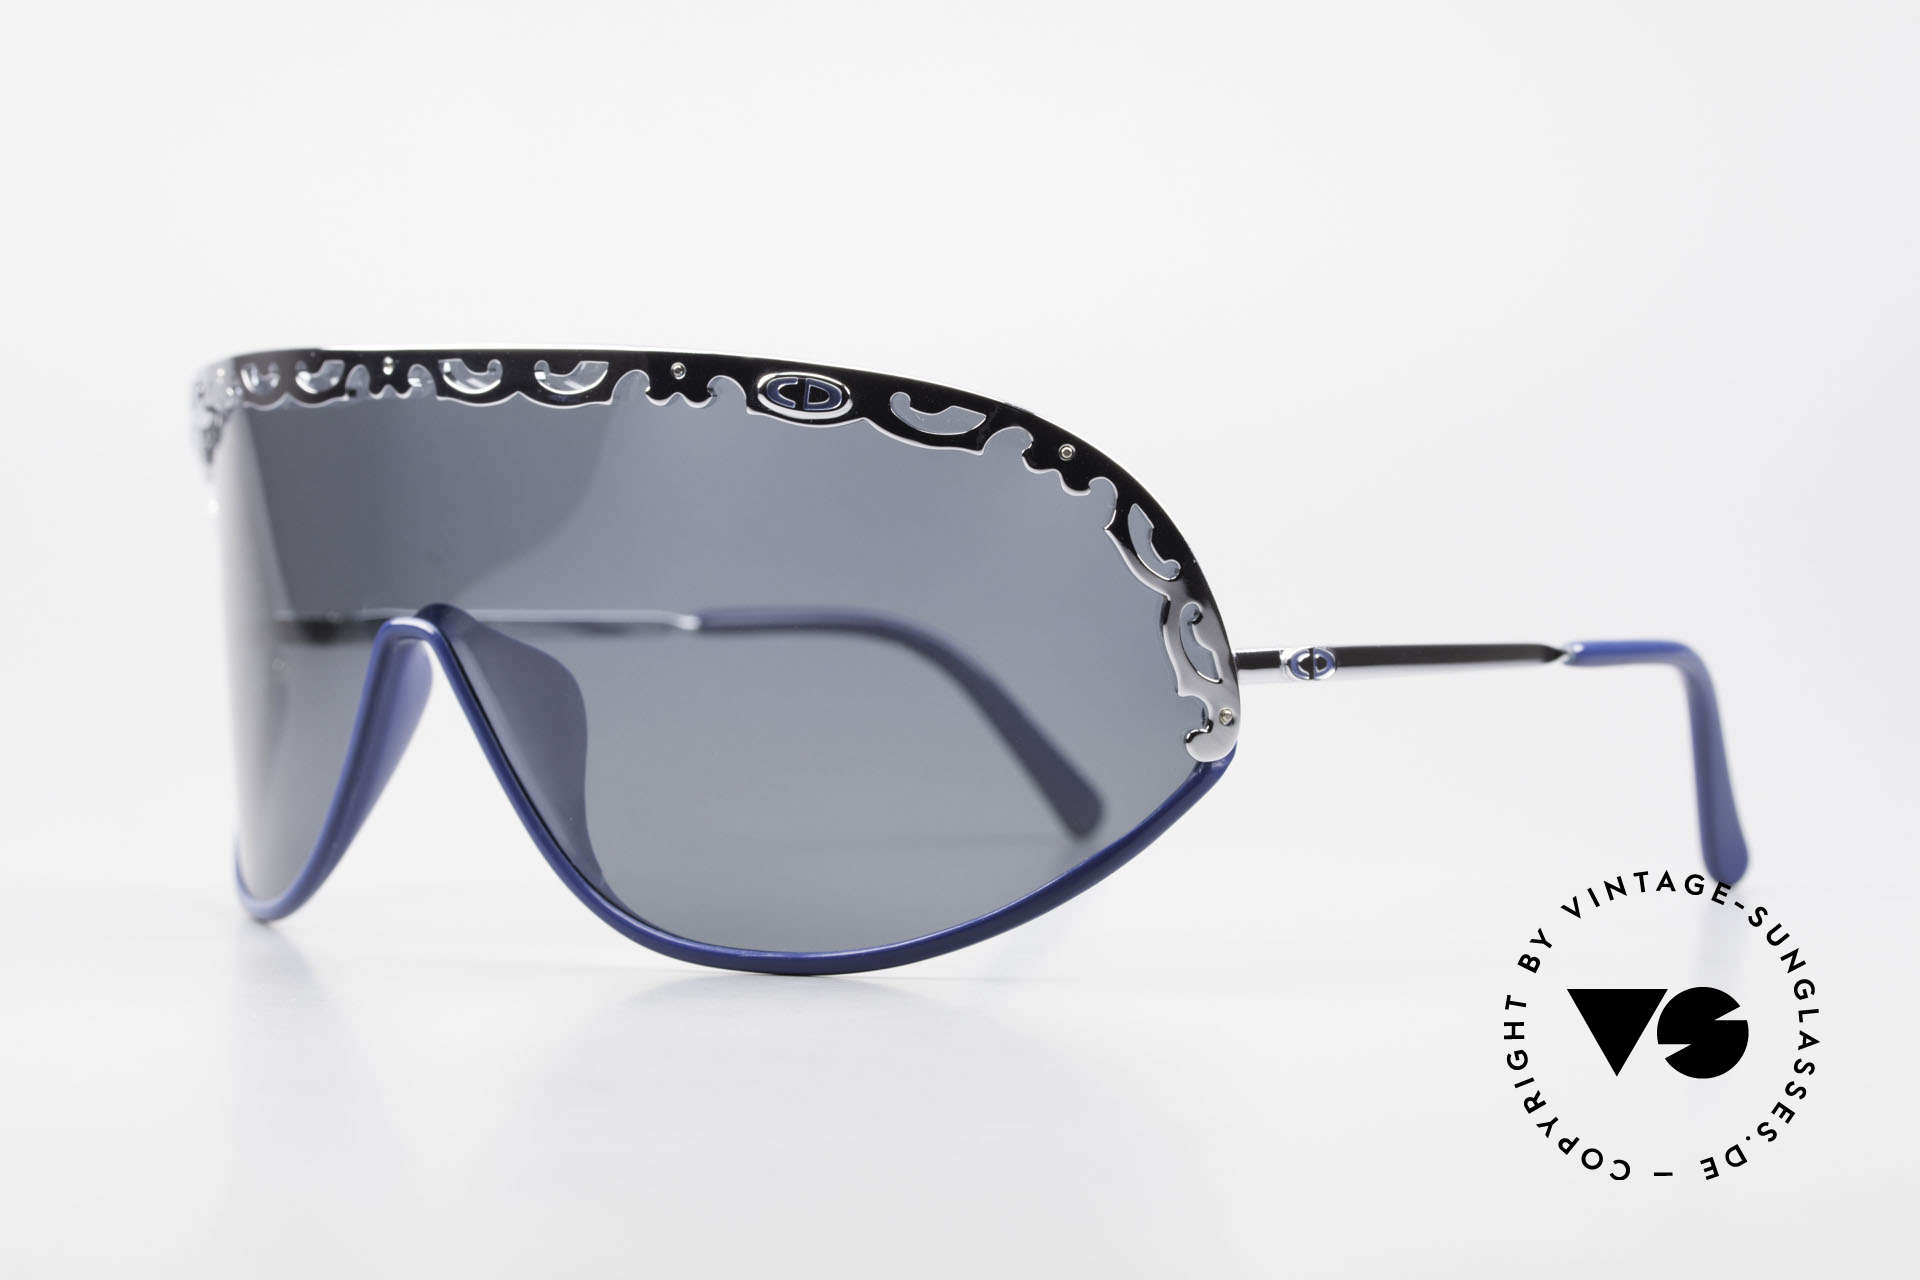 Christian Dior 2501 Panorama View Shades 80s 90s, functional designer shades with polarized lens / shield, Made for Women